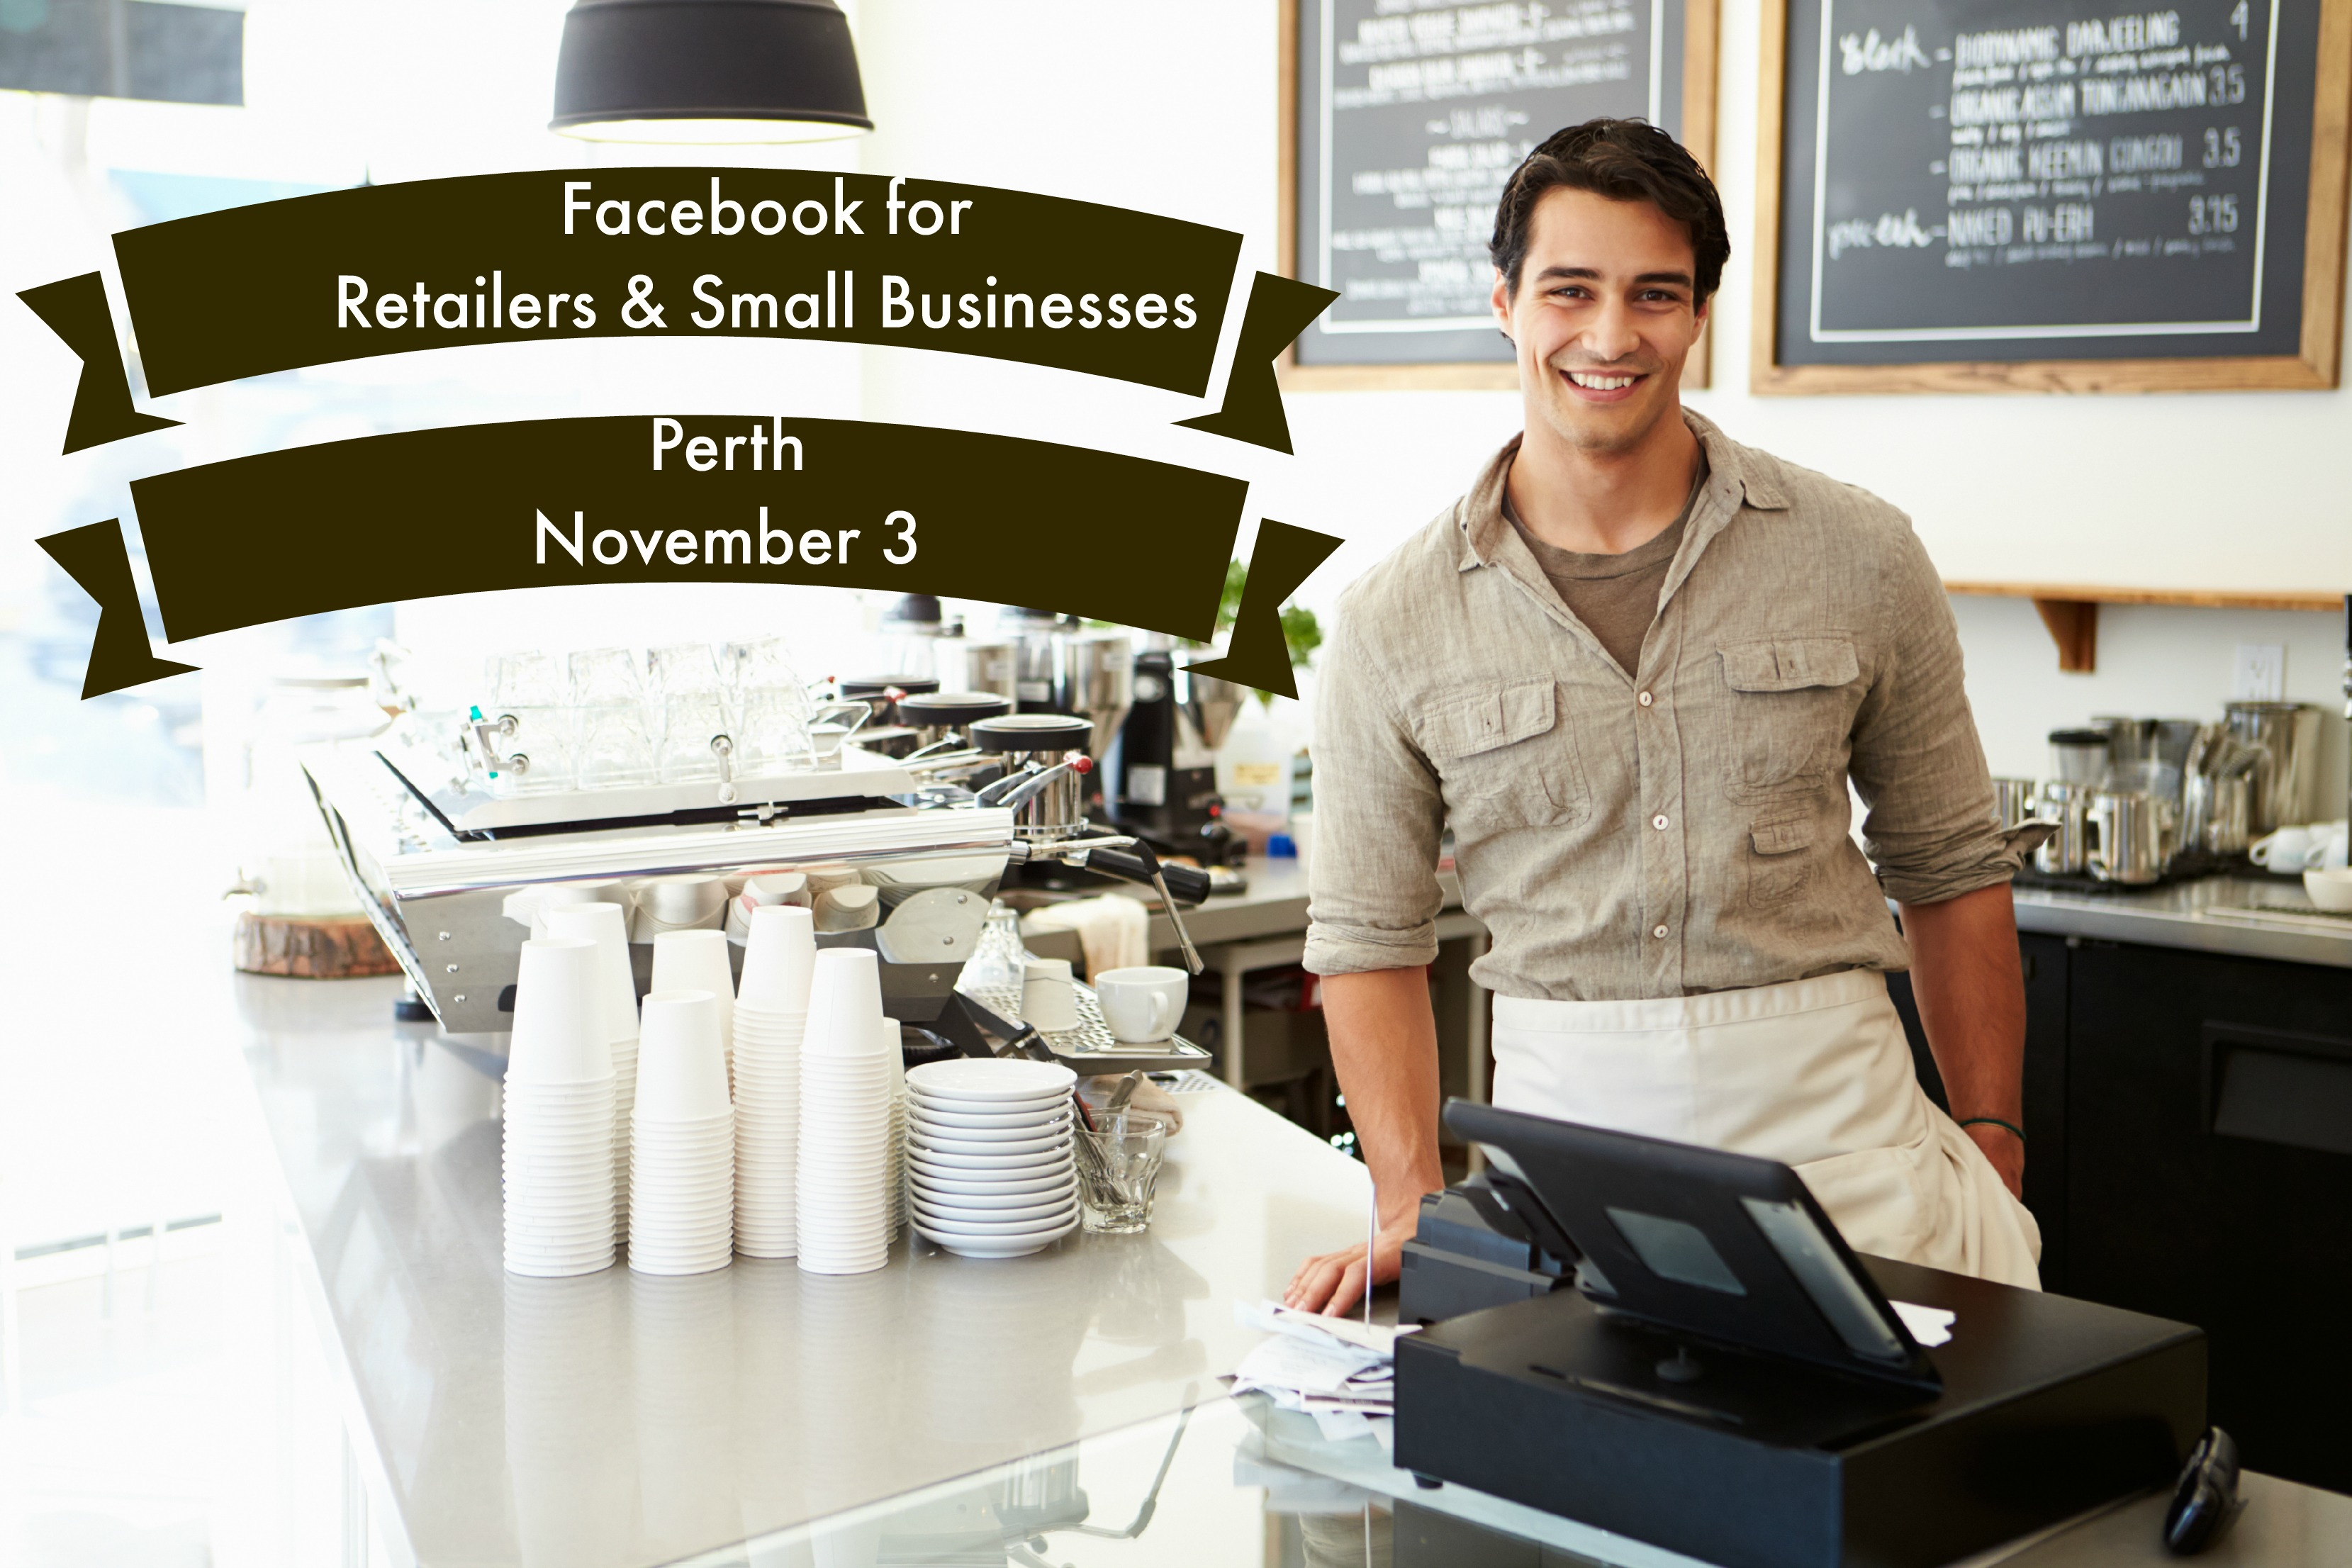 FACEBOOK for RETAILERS & Small Businesses - Perth November 3  - 9am-5pm